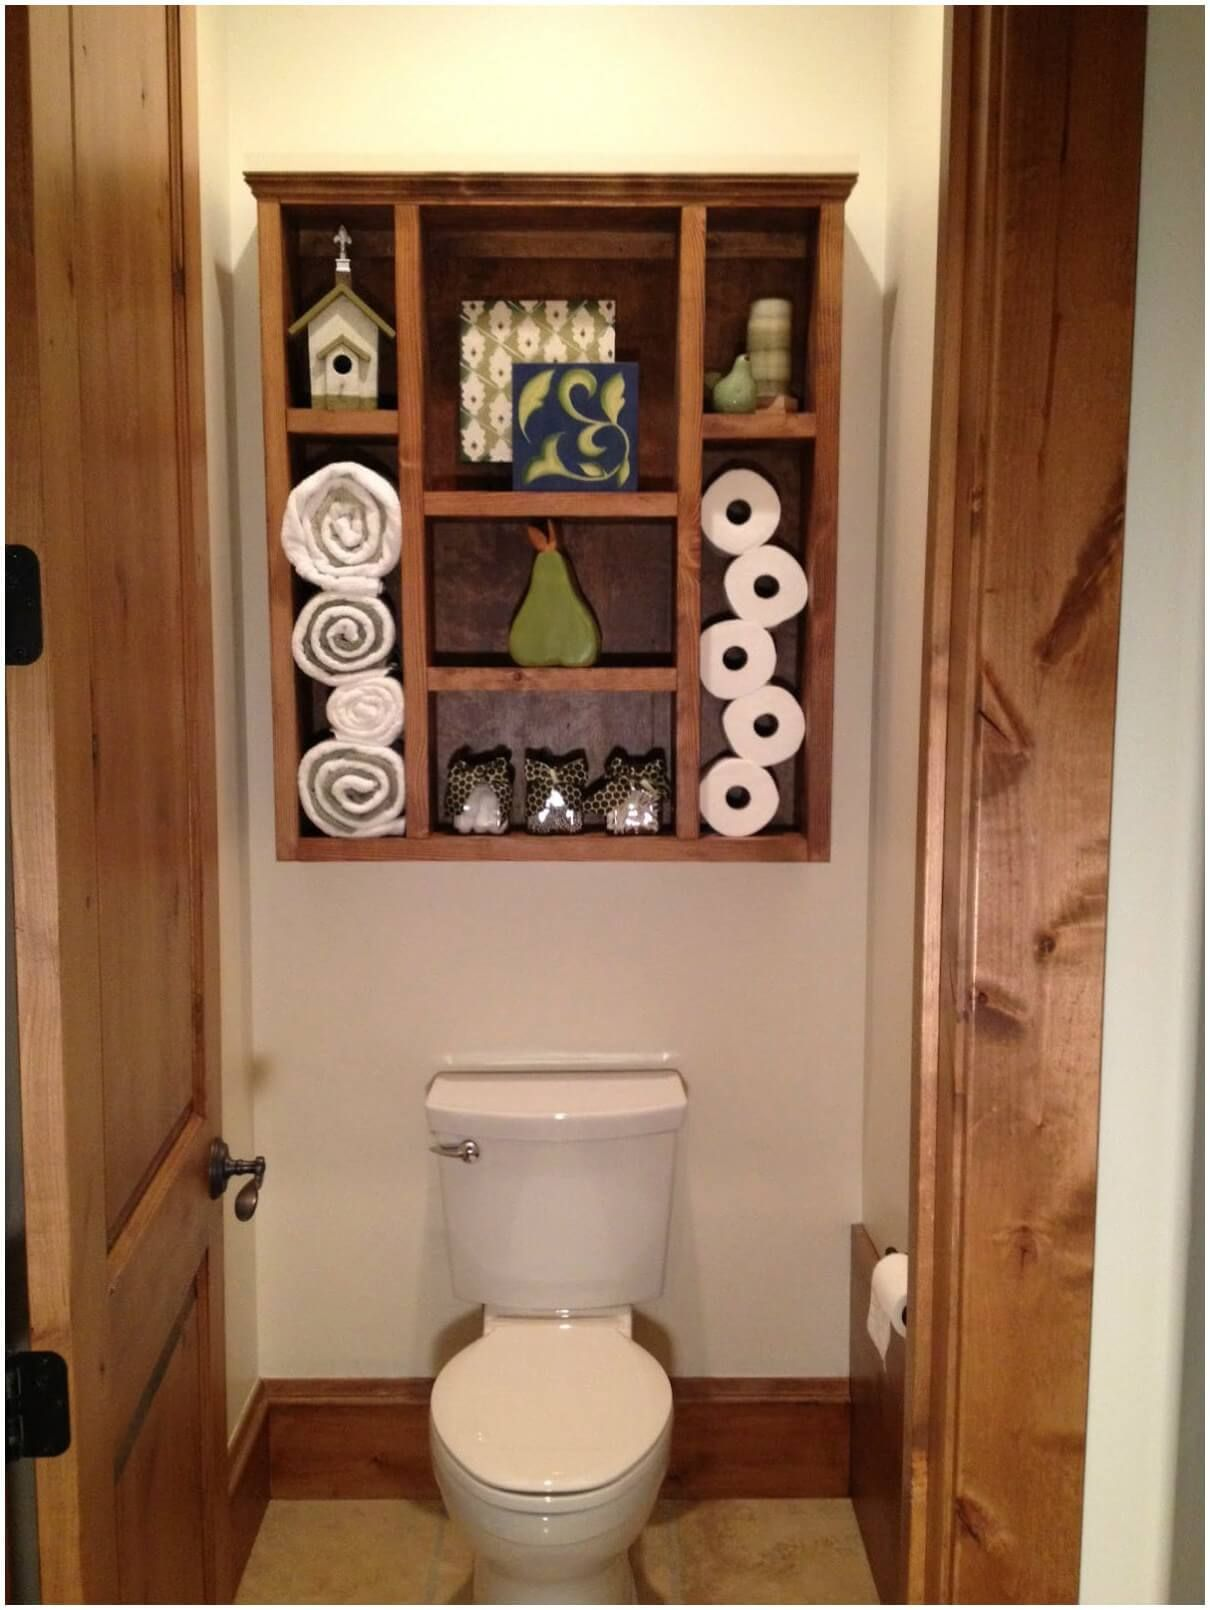 32 Brilliant Over The Toilet Storage Ideas That Make The Most Of Your Space Pallet Bathroom Shelf Bathroom Shelf Decor Pallet Wall Bathroom